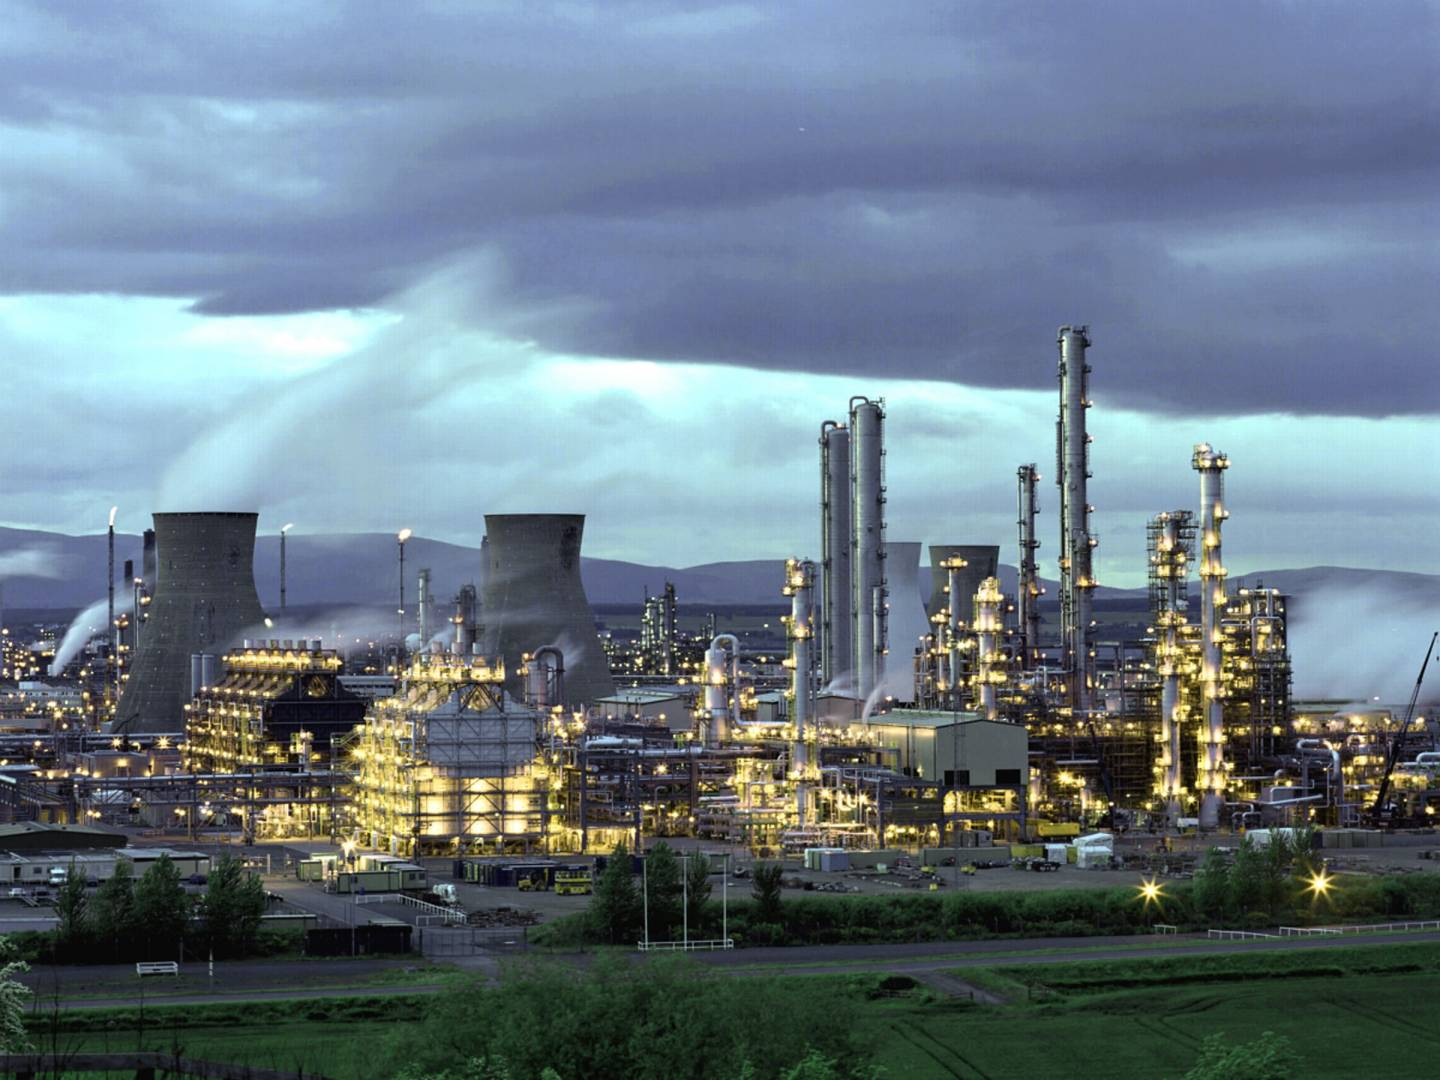 Ineos' Grangemouth site is the company's largest manufacturing site by volume of products. It makes around 1 million tonnes of products pa, including solvents, and is Scotland's largest crude oil refinery.